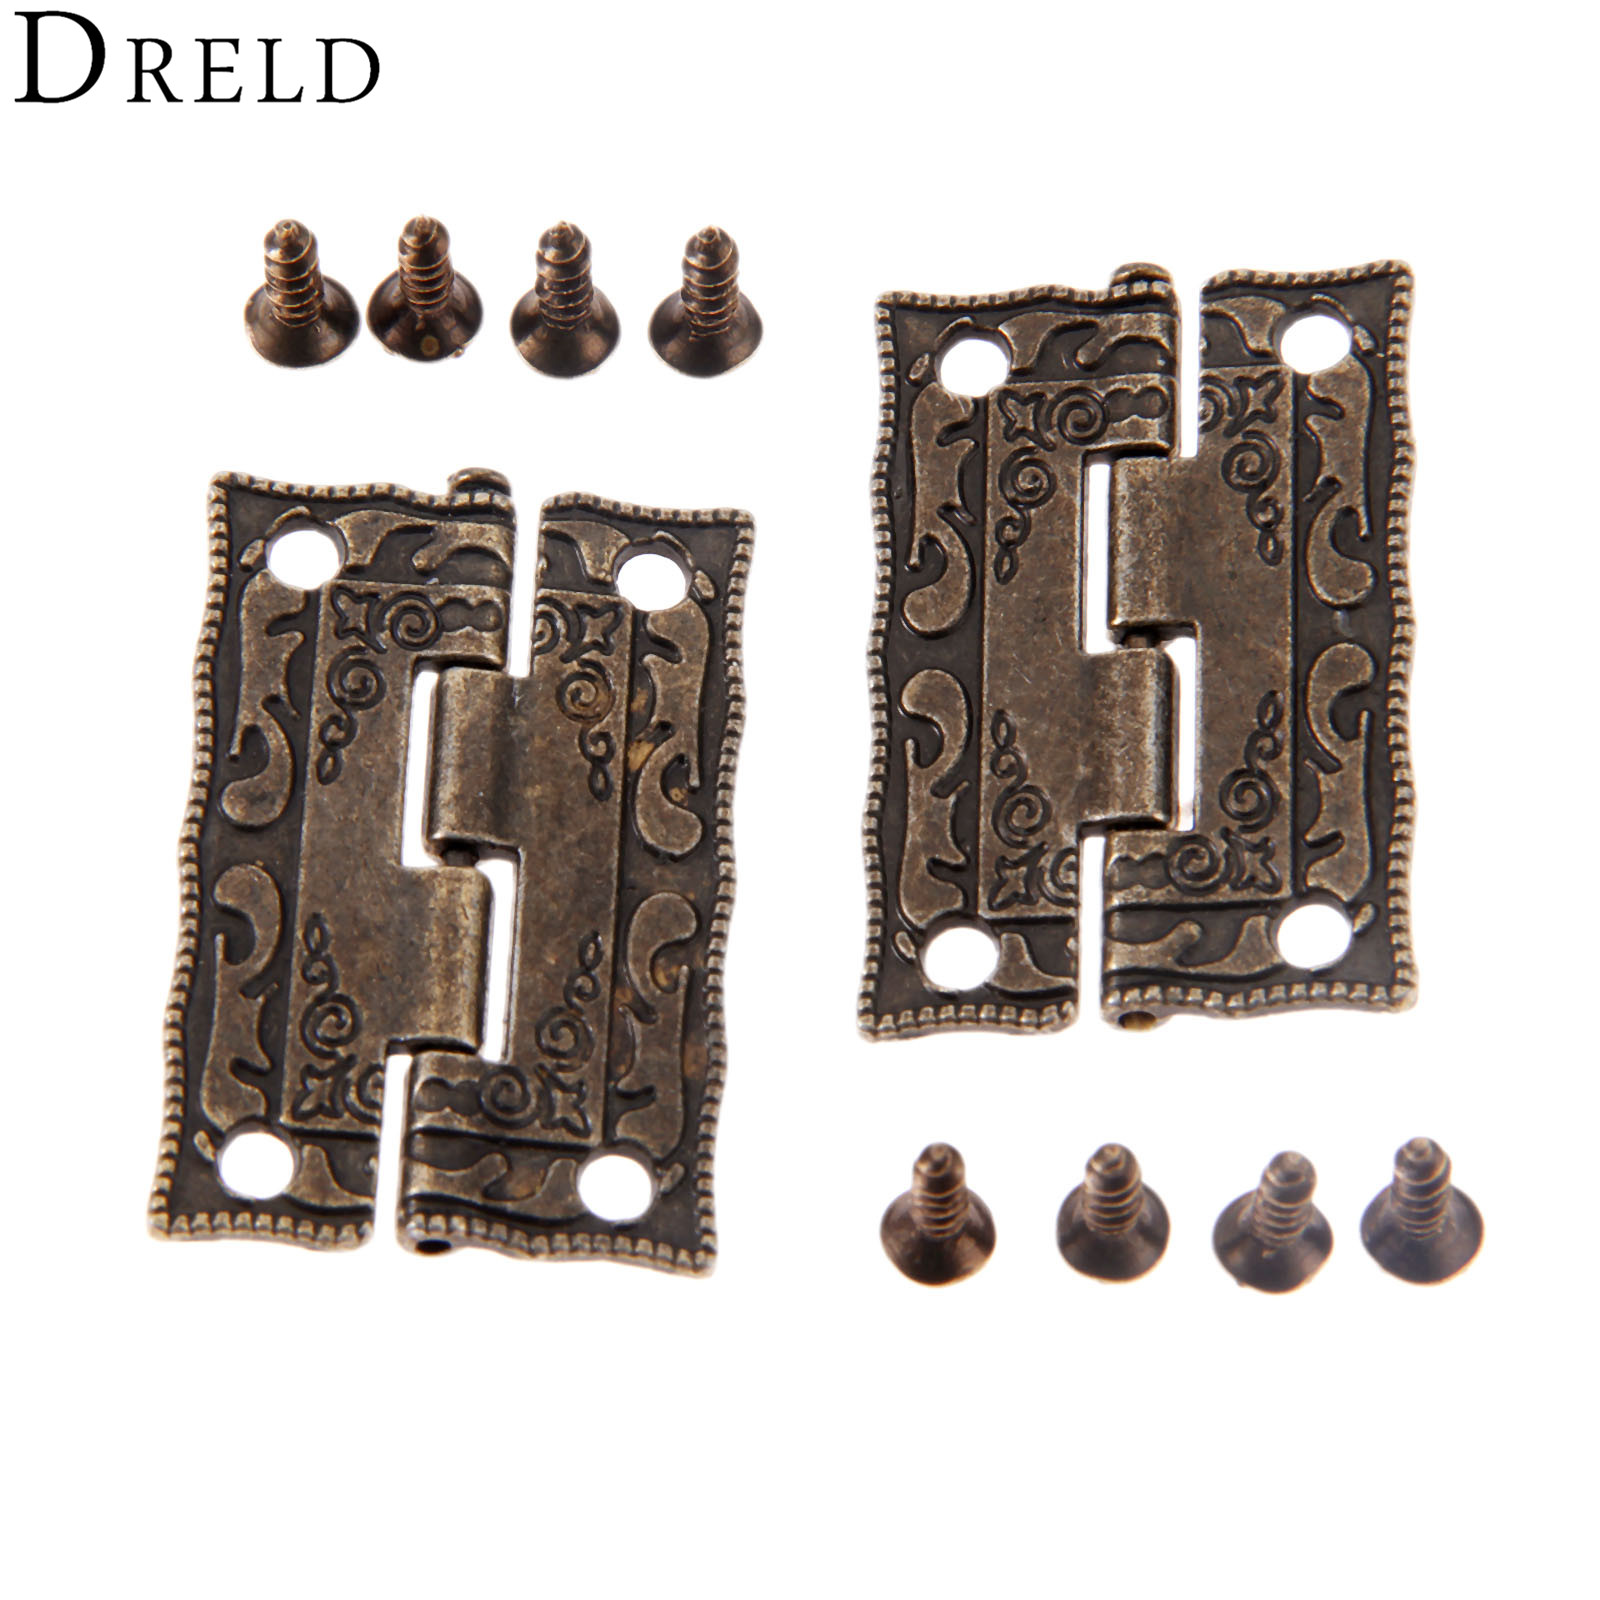 DRELD 2pcs 35*23mm Antique Bronze Hinges Cabinet Door Drawer Decorative Mini Hinge For Jewelry Wooden Box Furniture Hardware